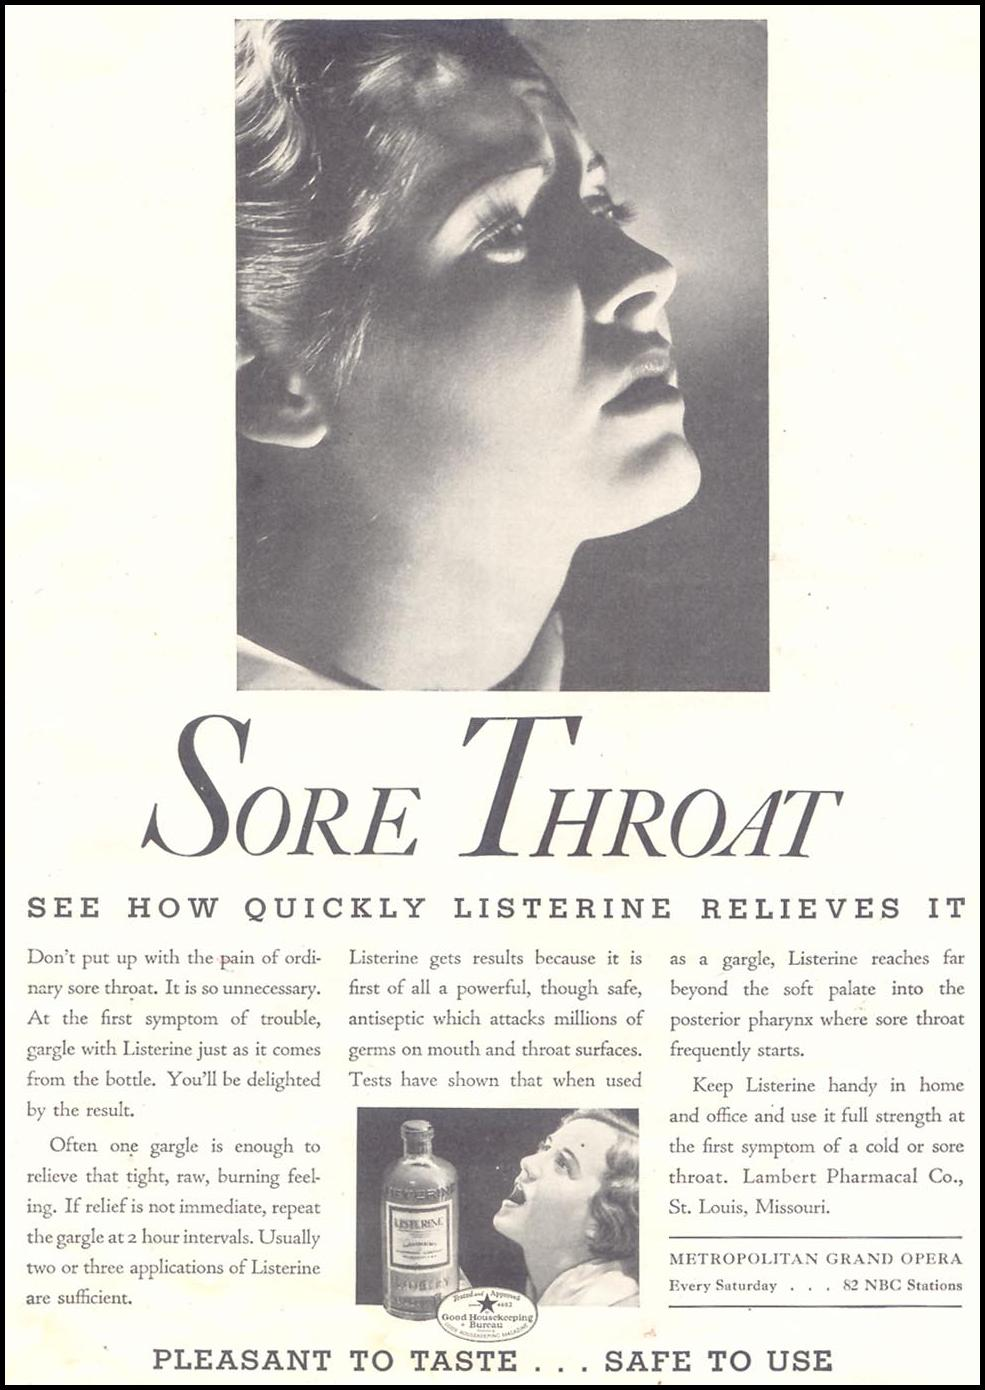 LISTERINE GOOD HOUSEKEEPING 03/01/1935 p. 3